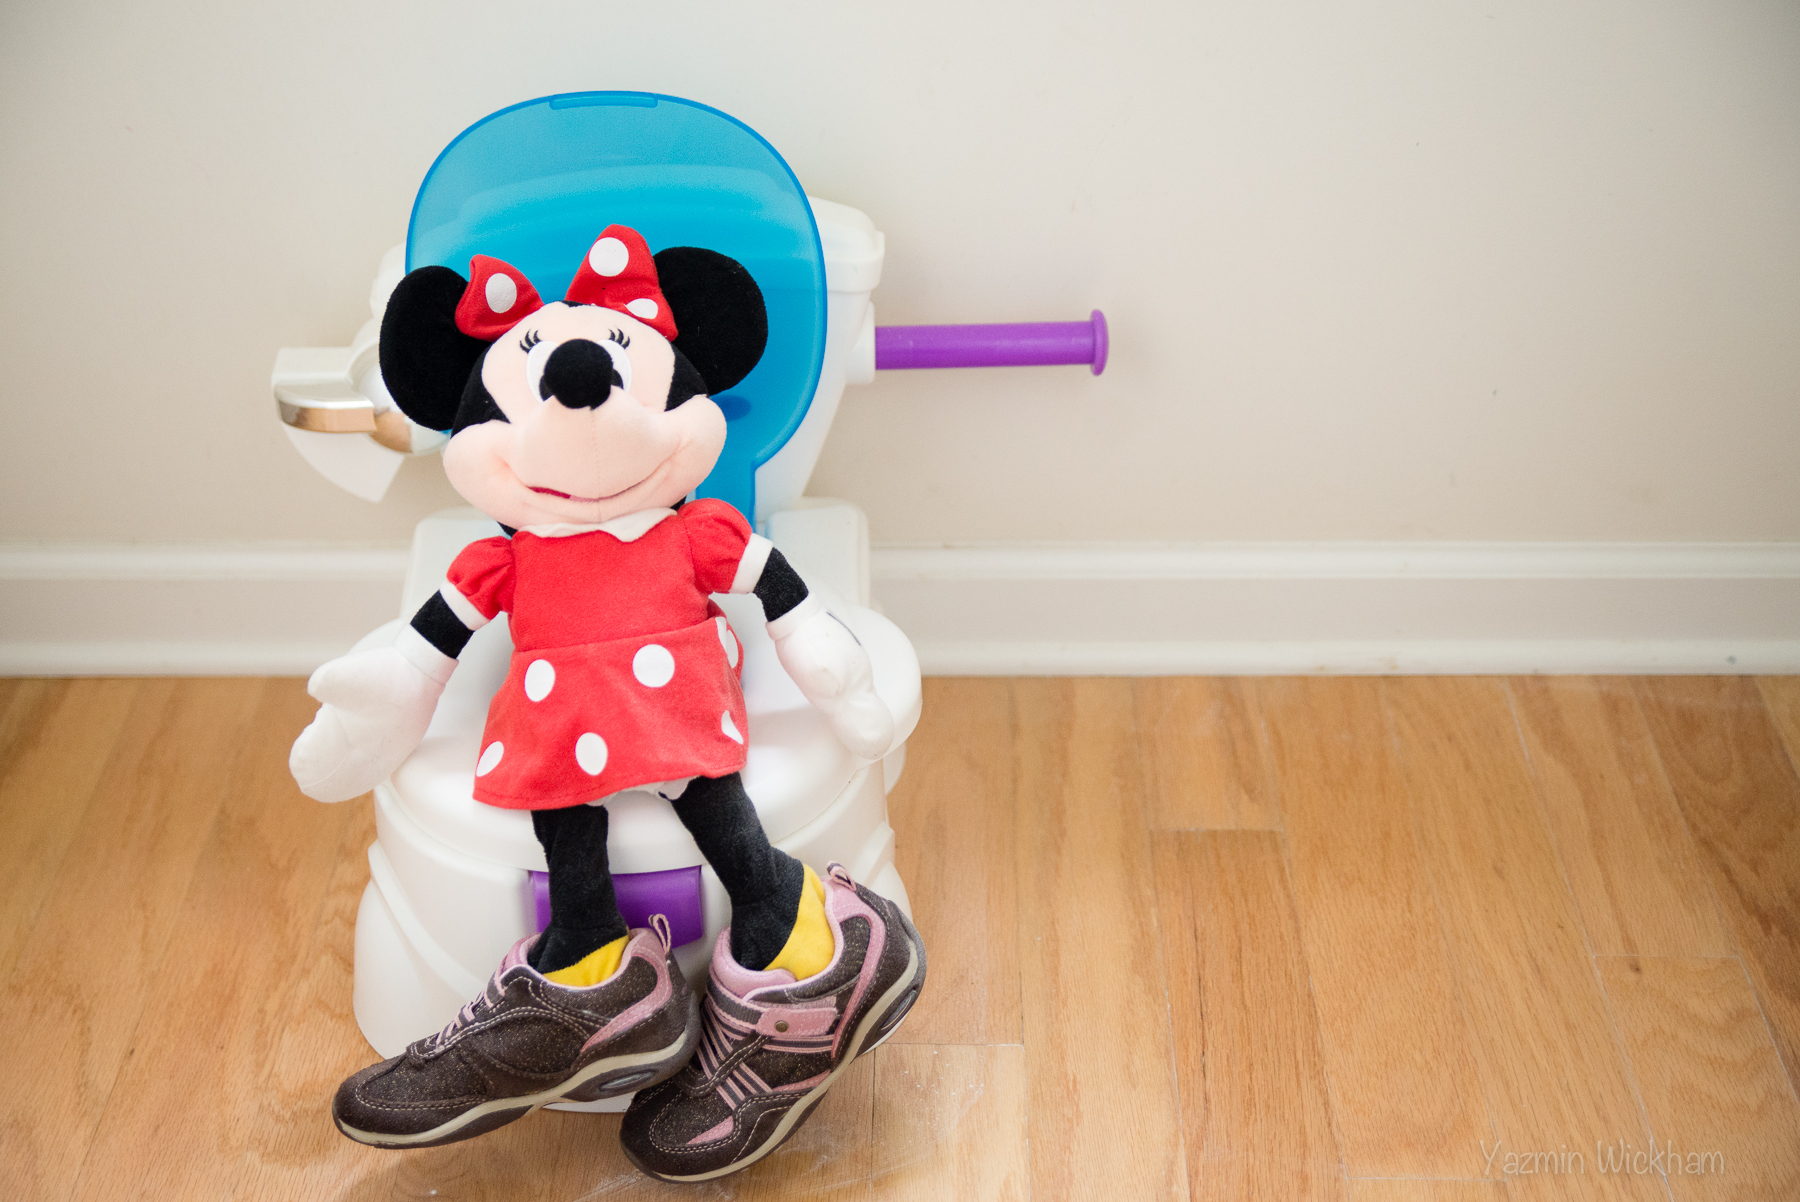 {239/365} Minnie wearing the girl's shoes and learning how to go potty